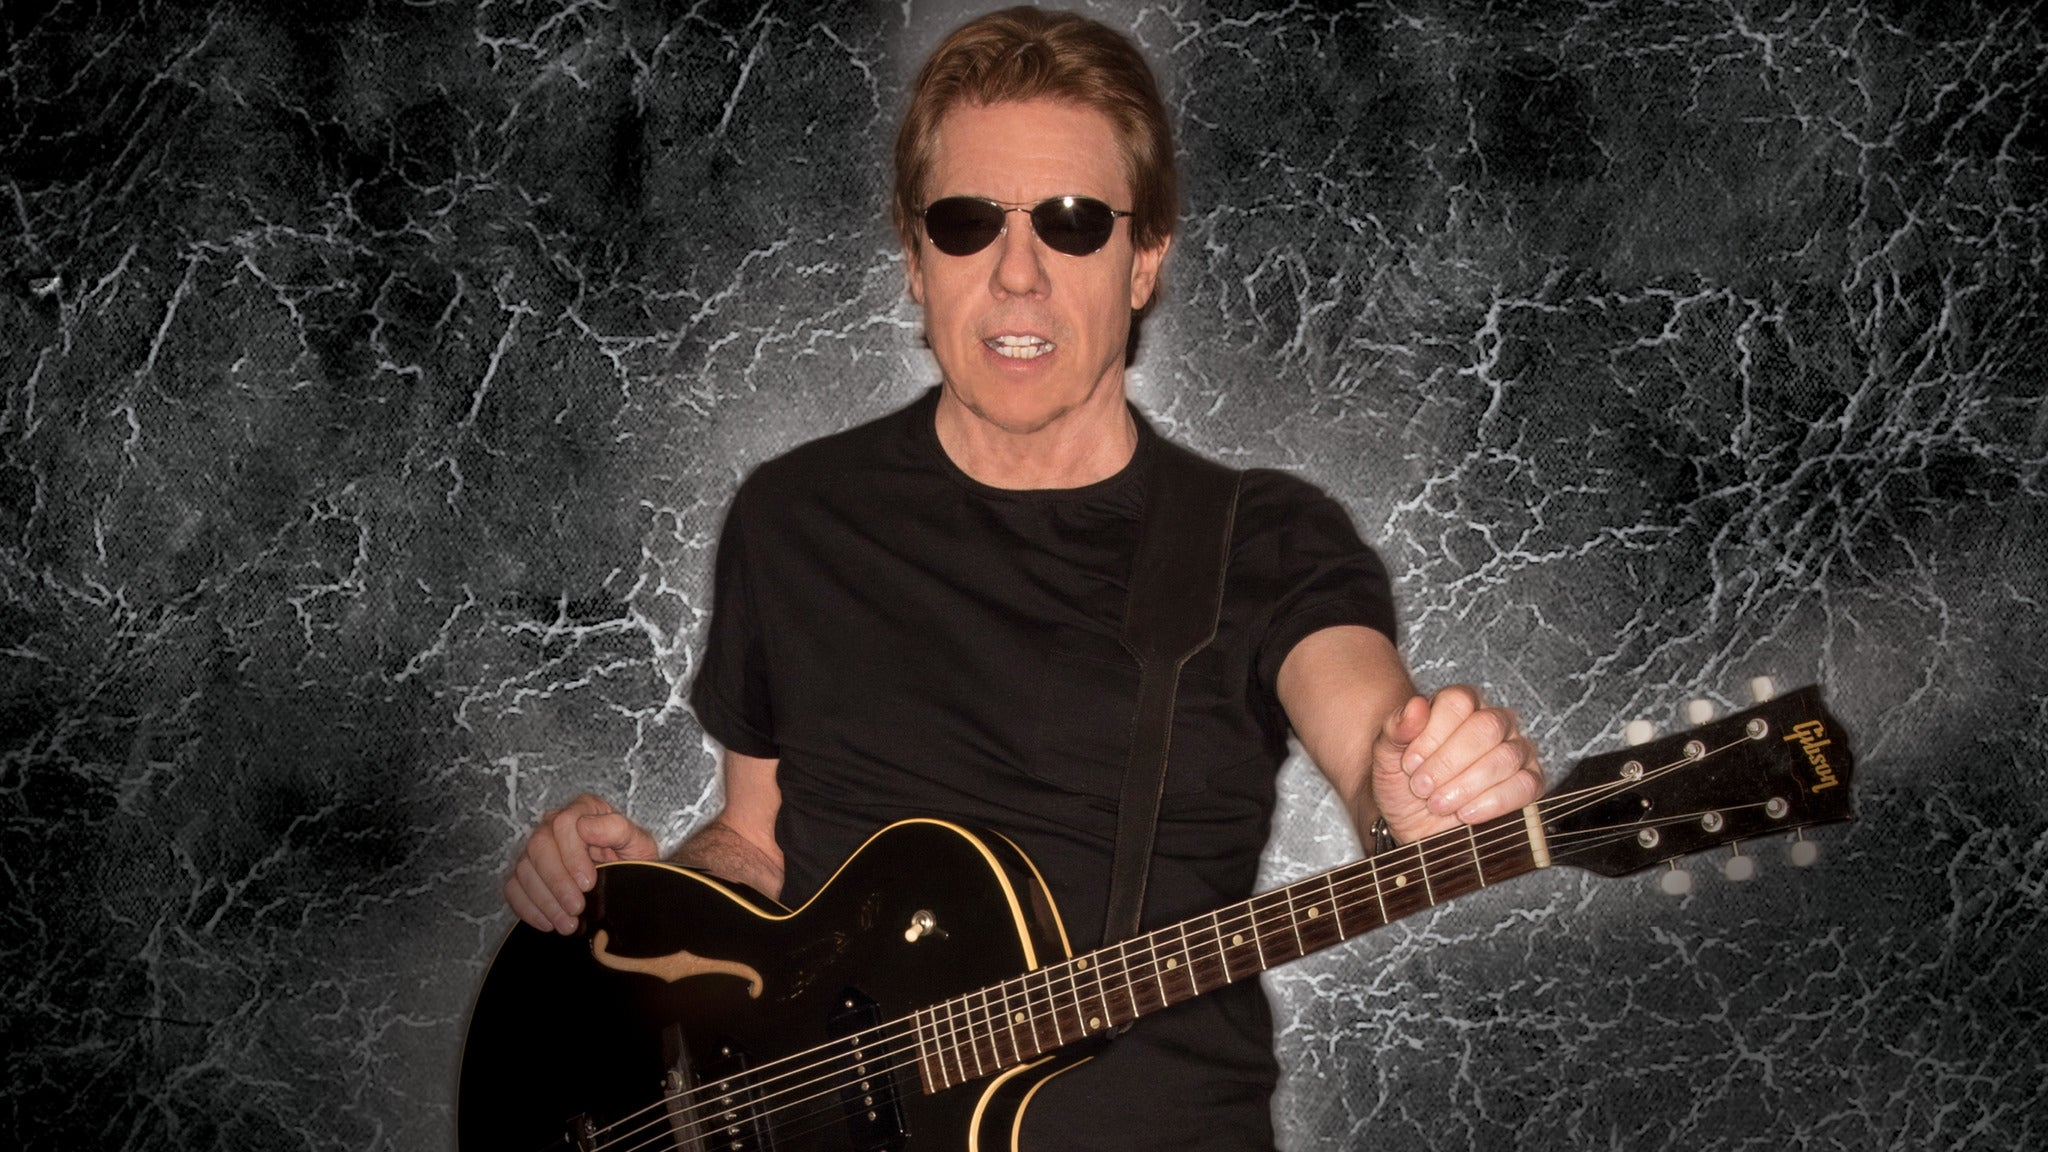 George Thorogood at Budweiser Events Center